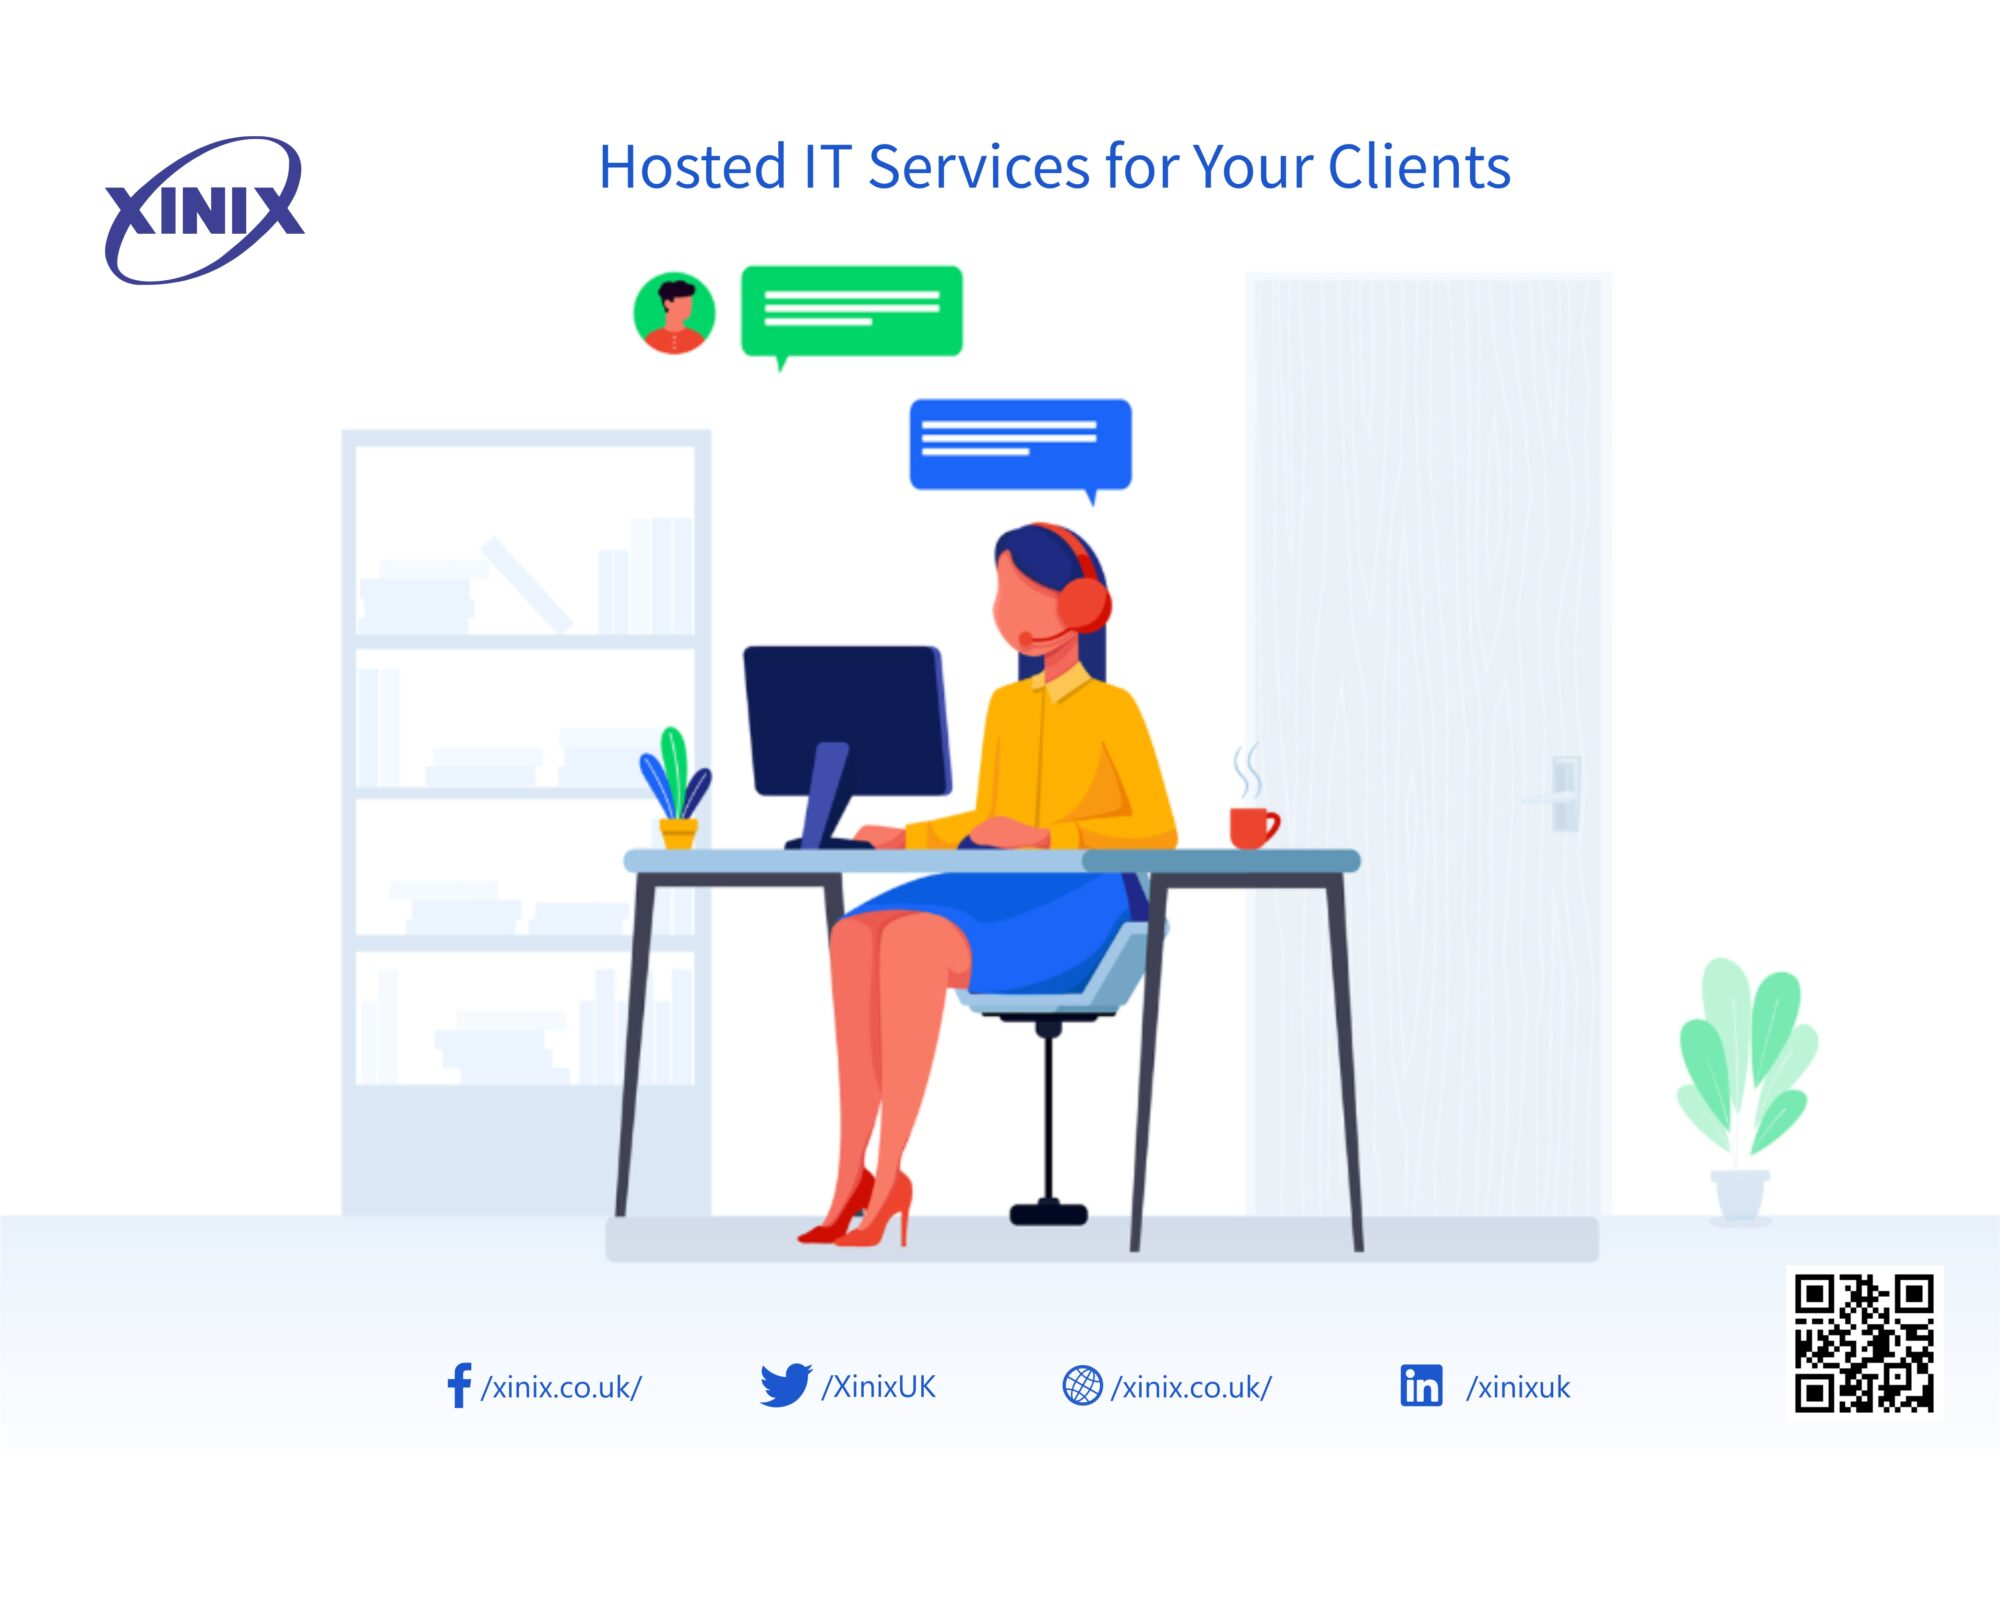 Hosted IT Services for Your Clients